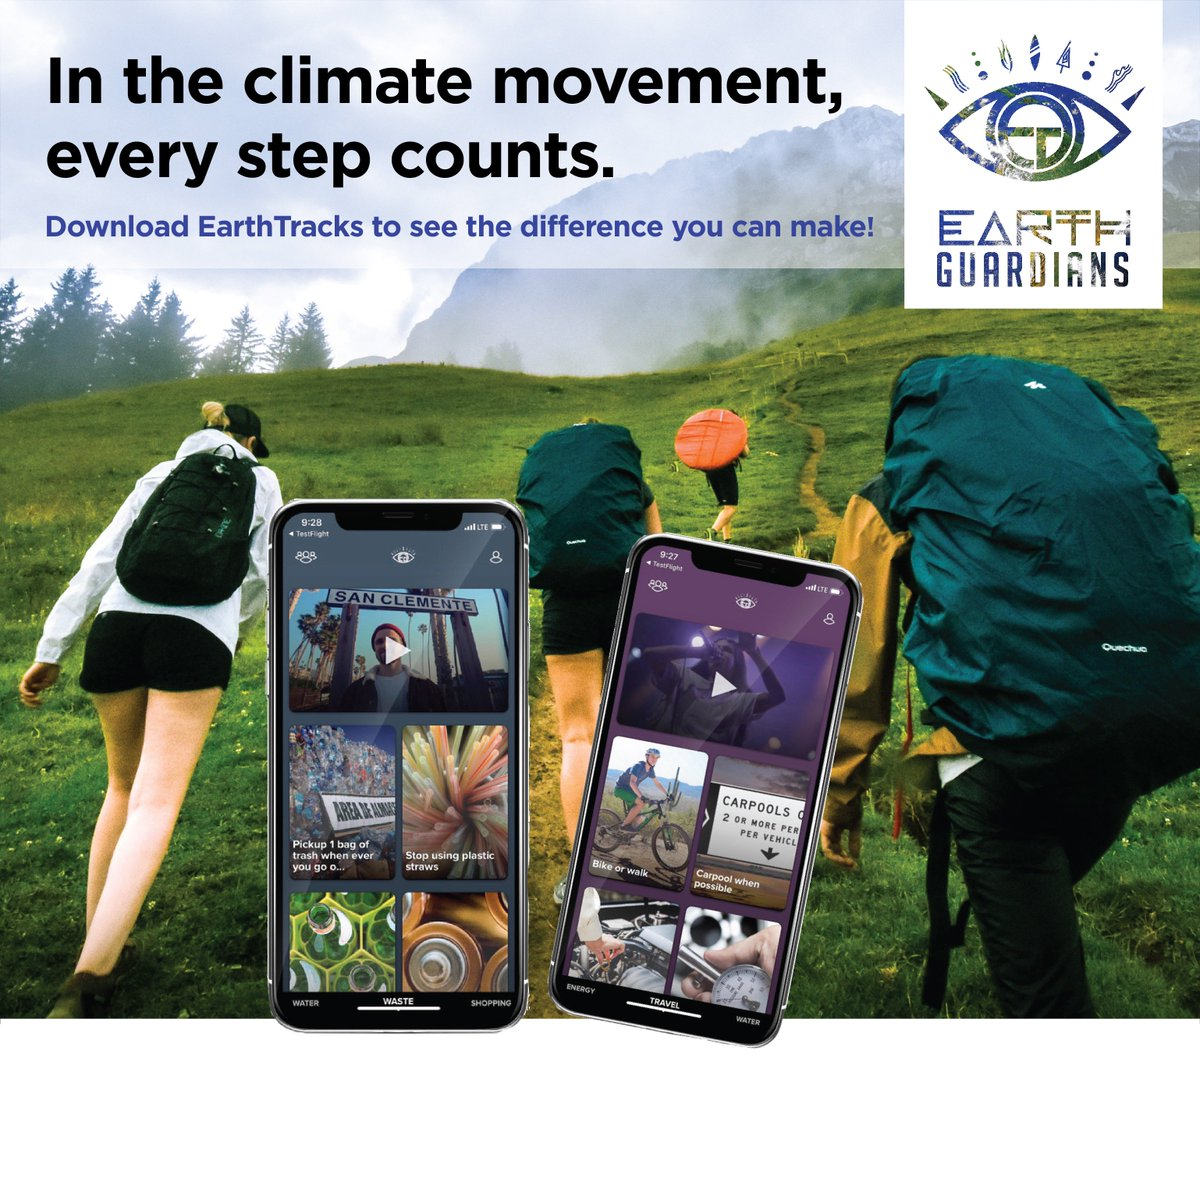 Our planet's climate is in a state of emergency. And you have the power to make an impact. Check out EarthTracks, the fresh new app showing you exactly how you can reduce water, waste, and carbon usage! Are you in? Find it in the App Store! #earthtracks